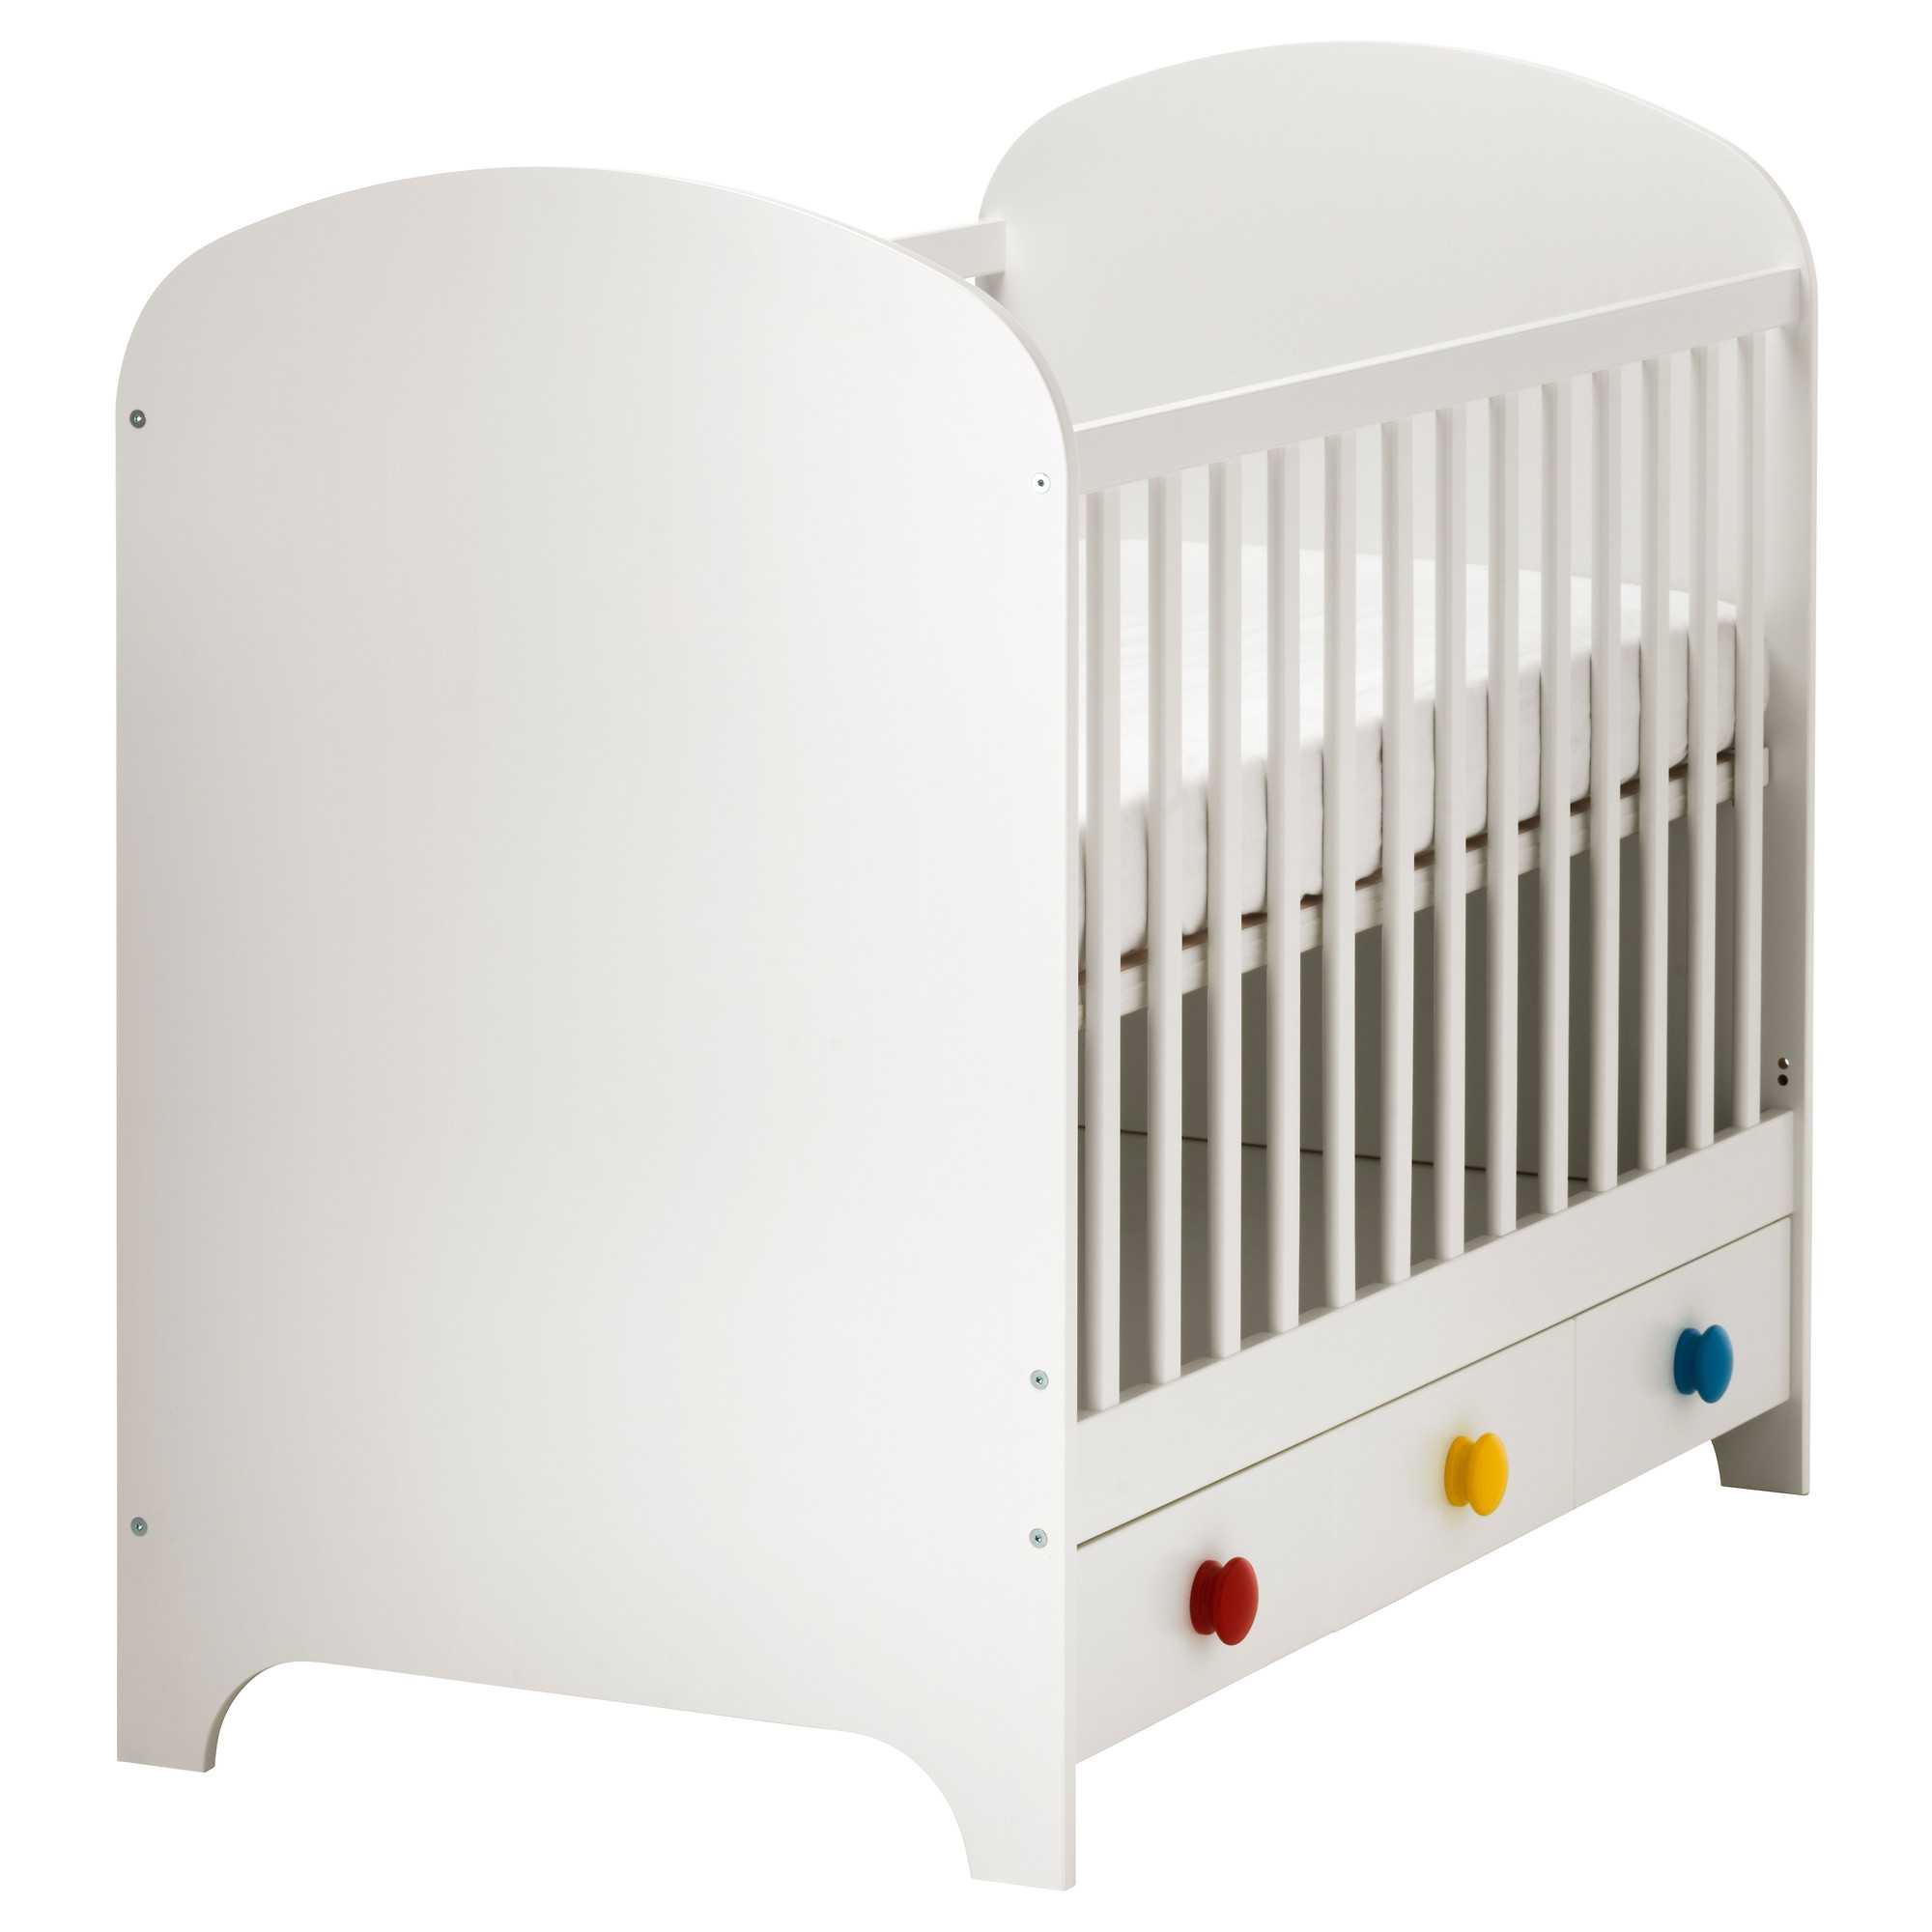 Us Furniture And Home Furnishings Ikea Crib Ikea Baby Ikea Cot